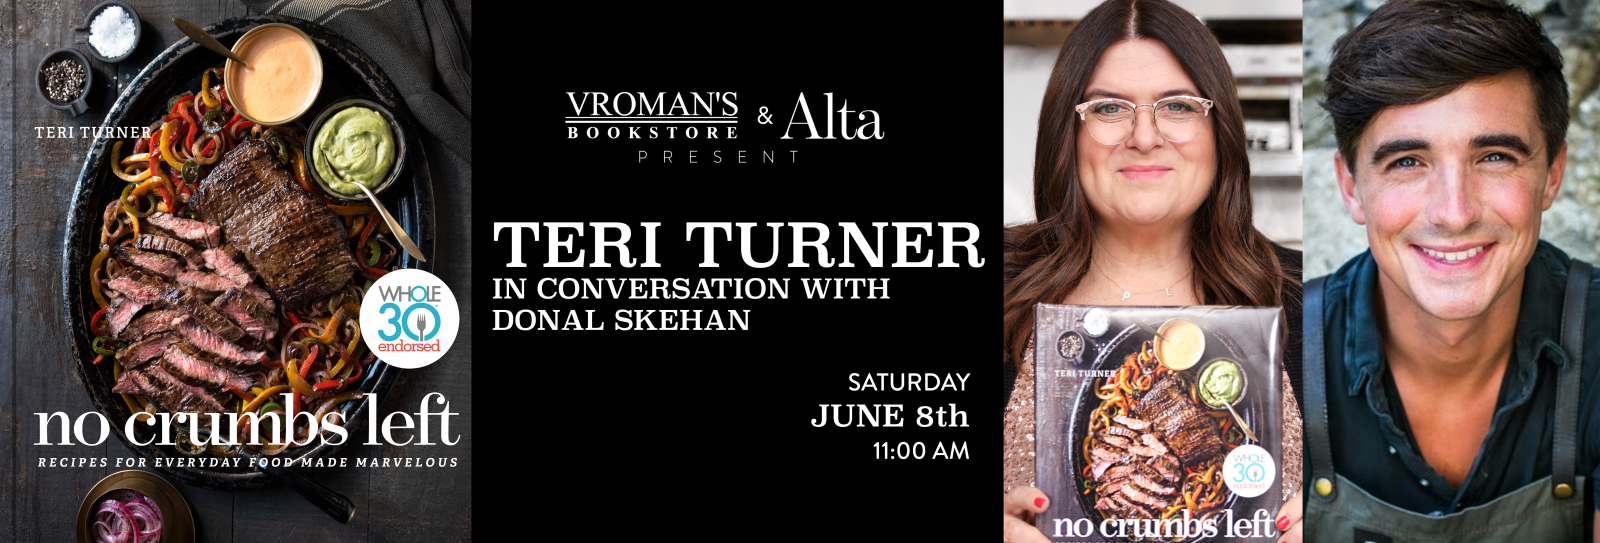 Teri Turner book signing Saturday June 8th at 11am